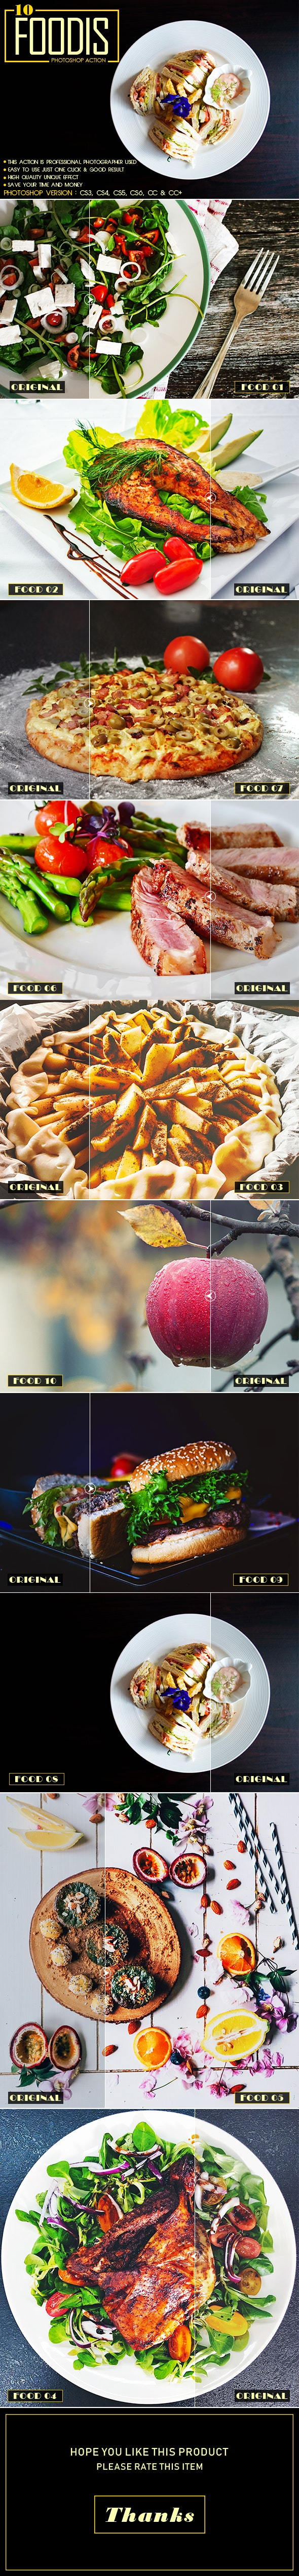 10 Foodis Photoshop Action - Photo Effects Actions